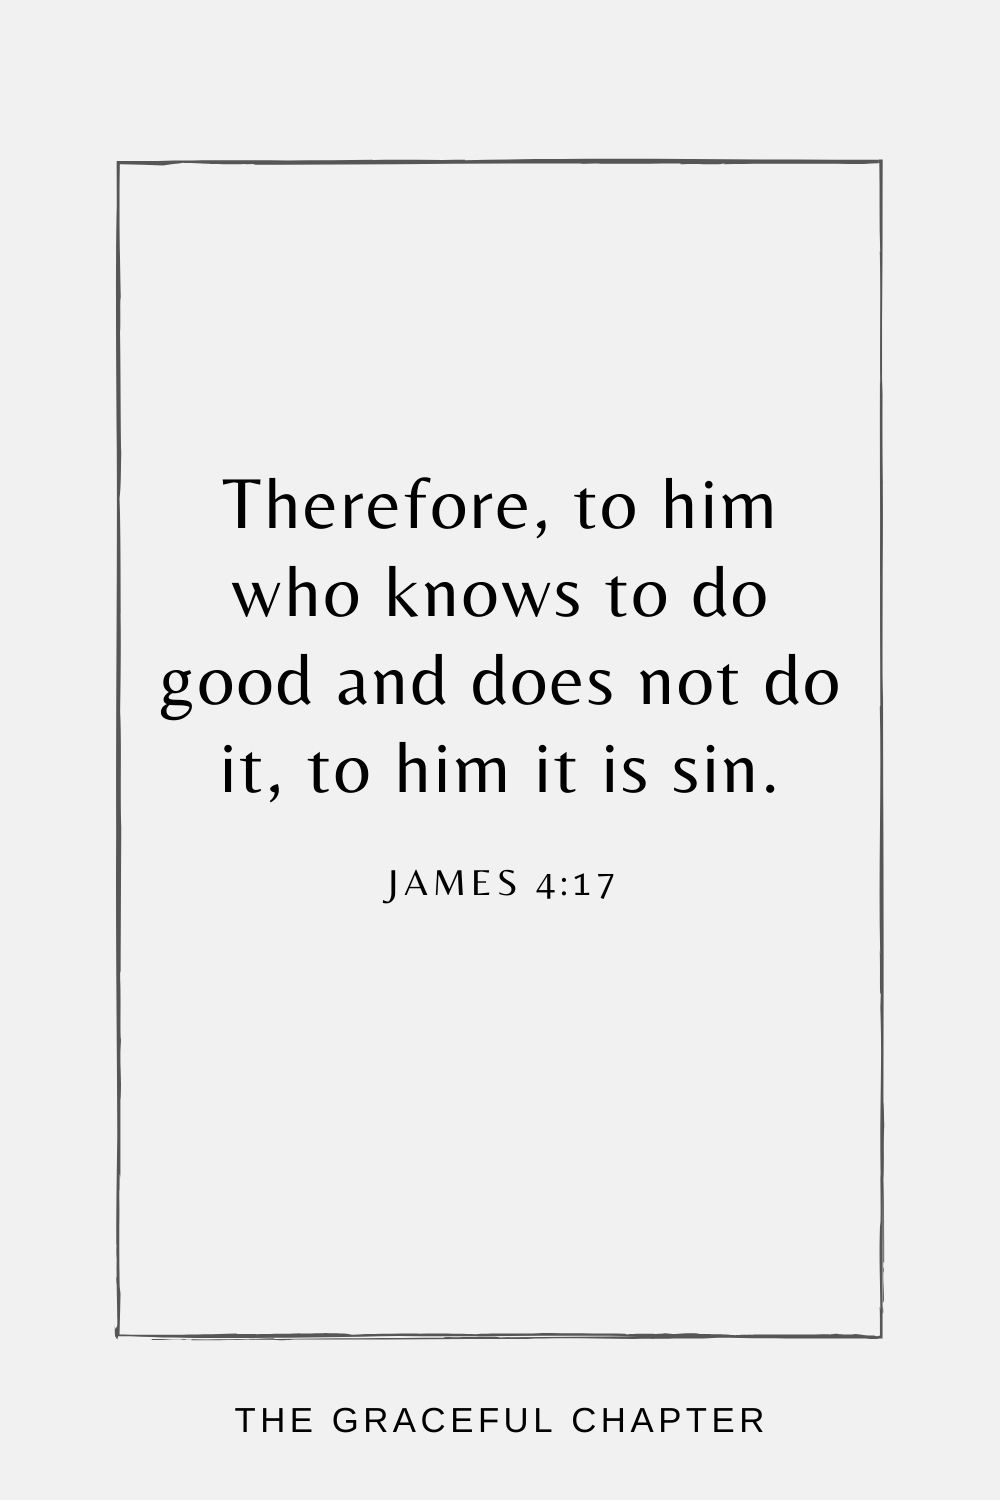 Therefore, to him who knows to do good and does not do it, to him it is sin. James 4:17